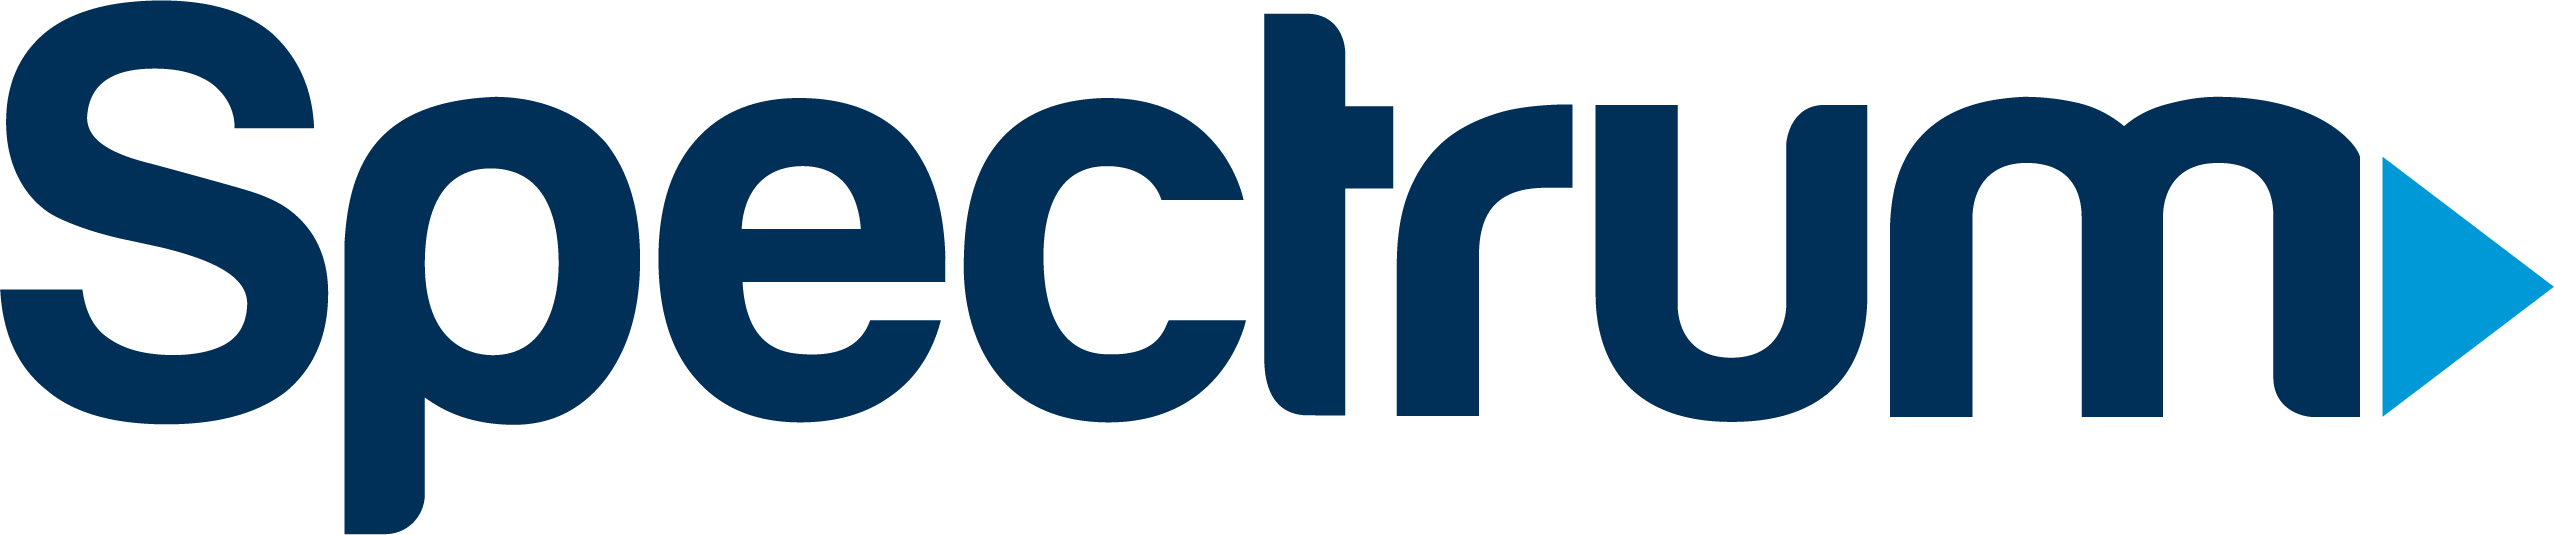 Charter Spectrum Cable TV Deals